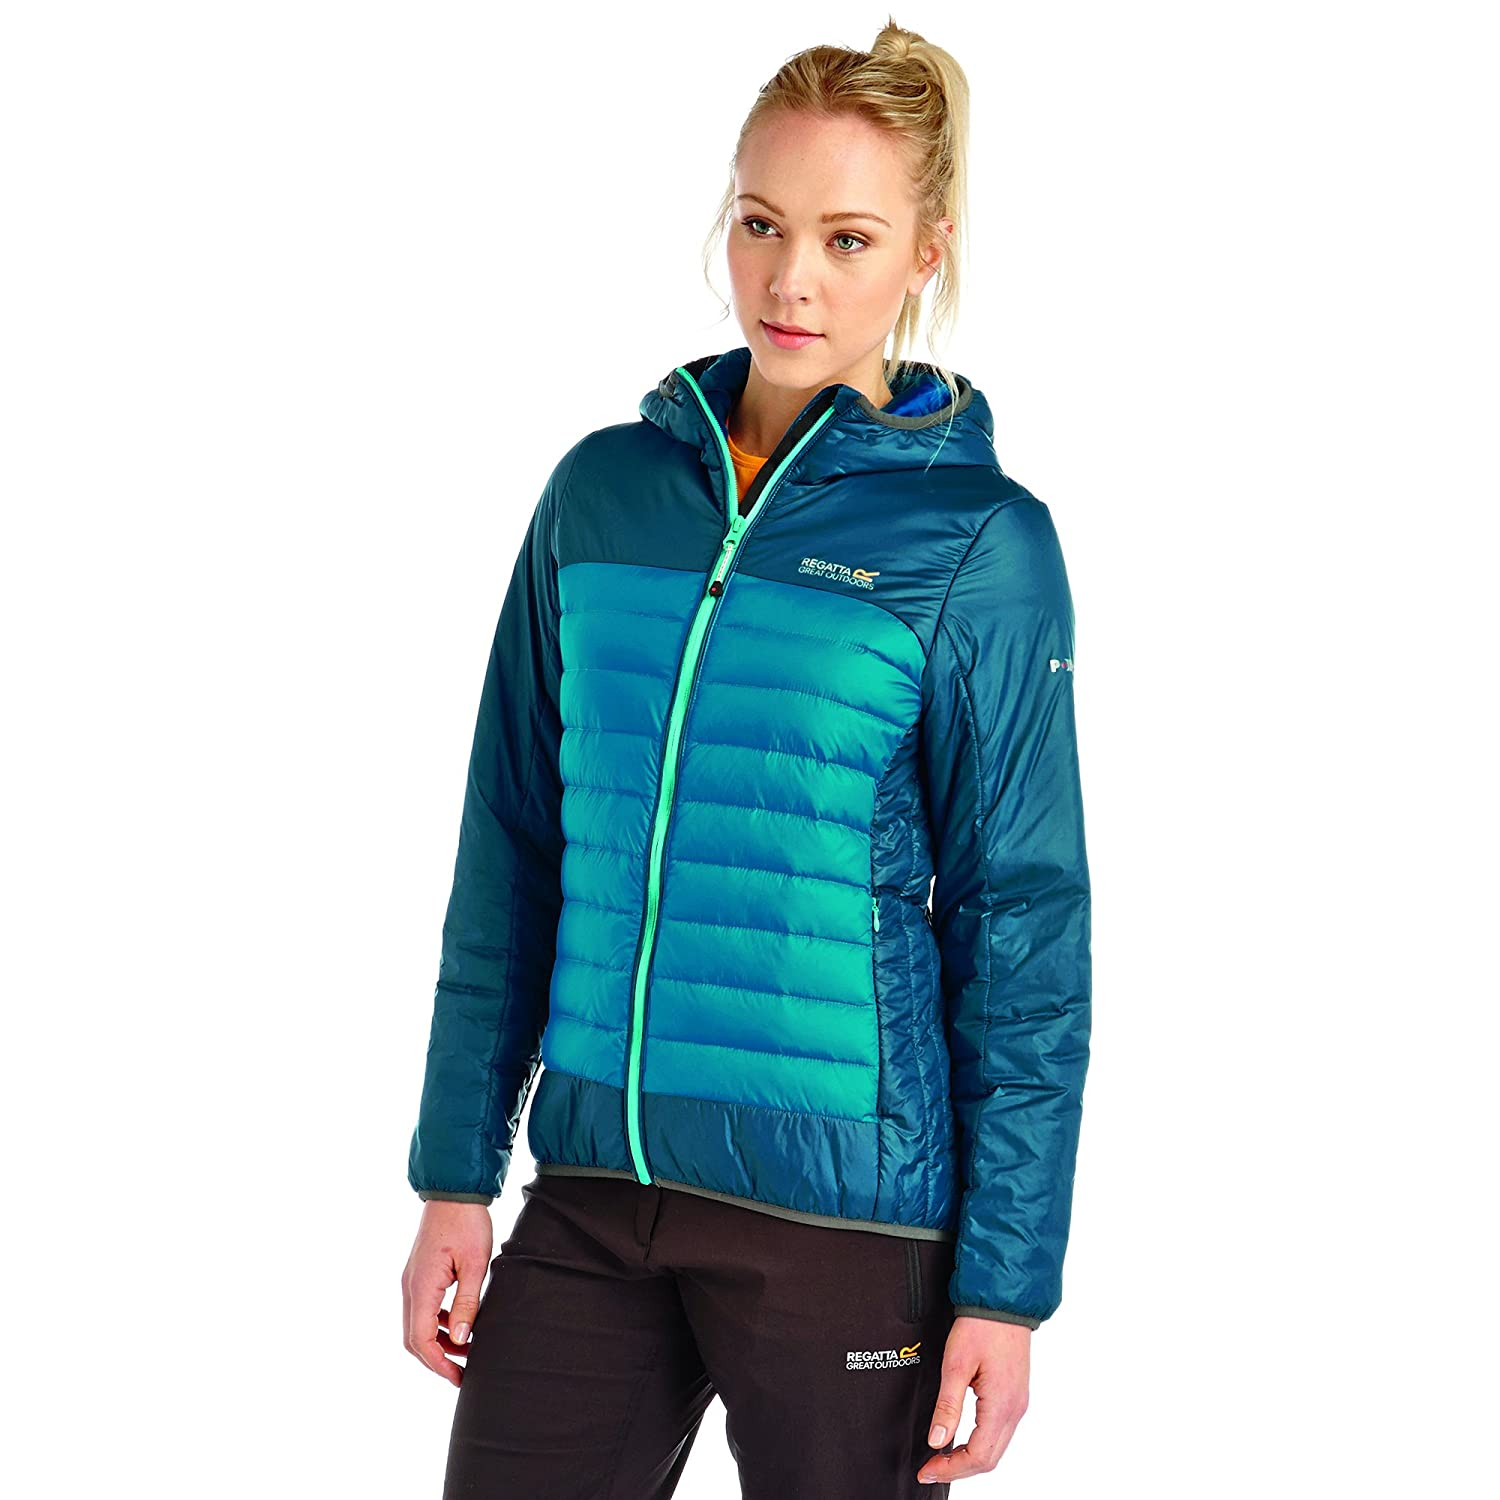 Regatta Great Outdoors Damen Point 214 Highfell Daunenjacke, wasserfest online bestellen